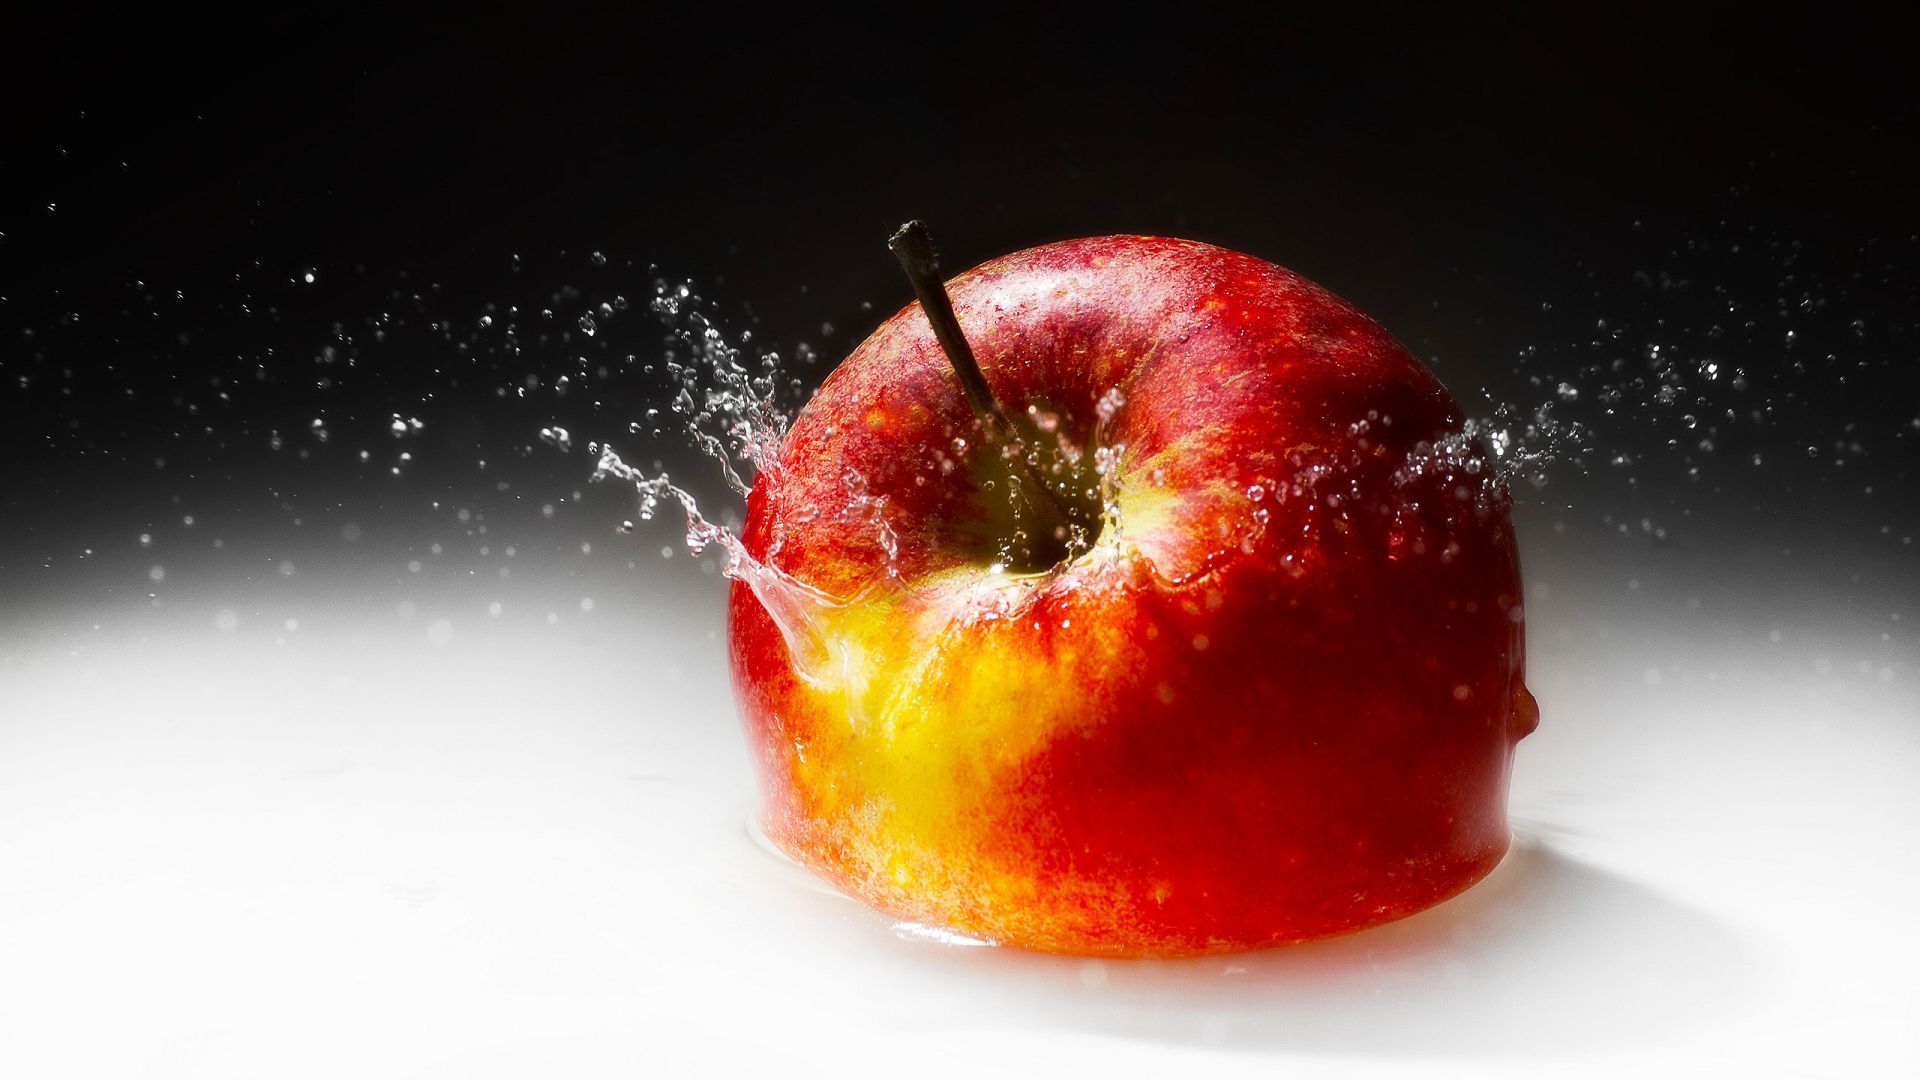 September 18 2015 By Stephen Comments Off on Apple Fruit Wallpapers 1920x1080